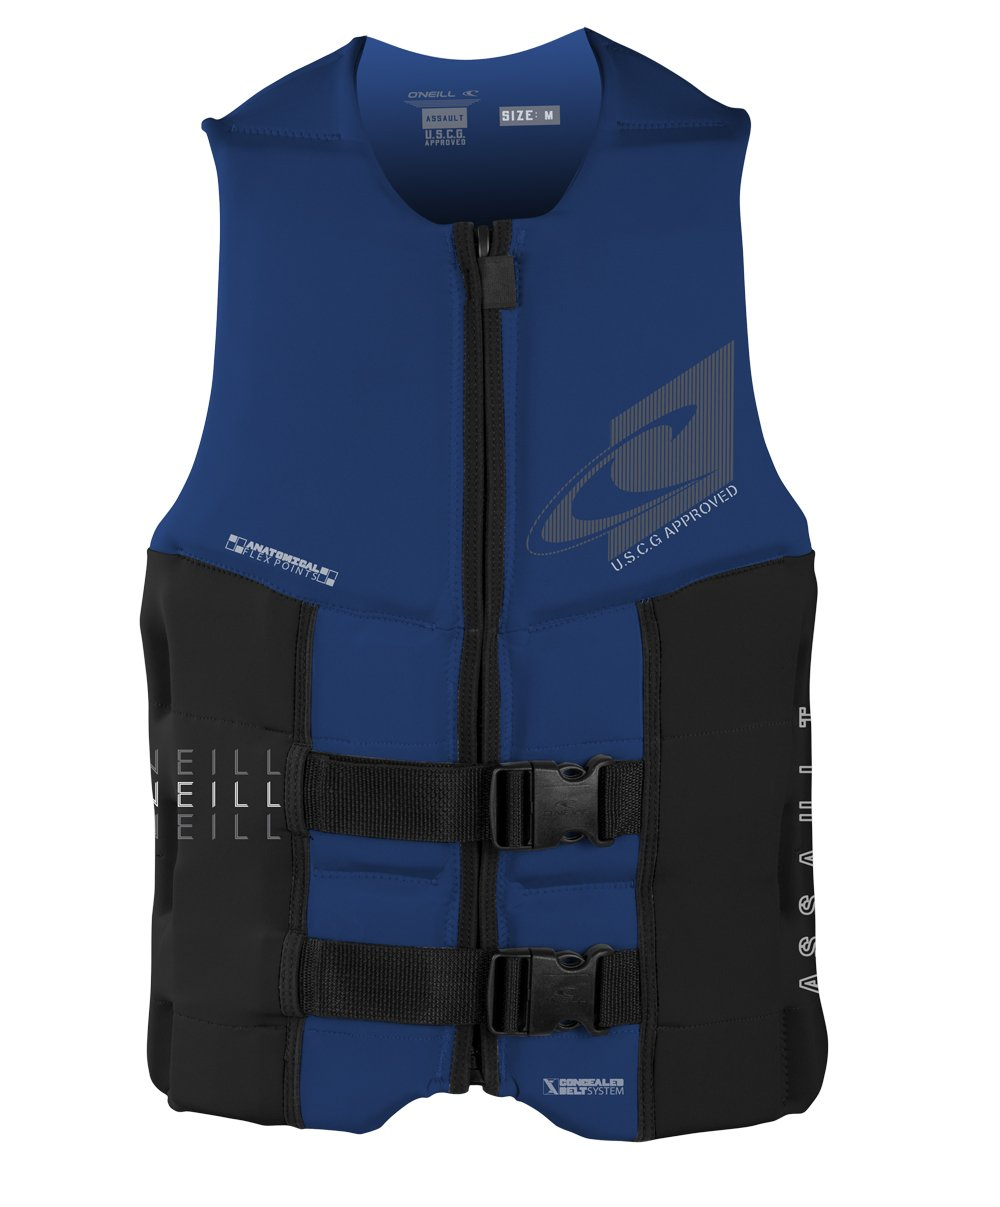 O'Neill Wetsuits Men's Assault USCG Life Vest, Pacific/Black by O'Neill Wetsuits (Image #1)